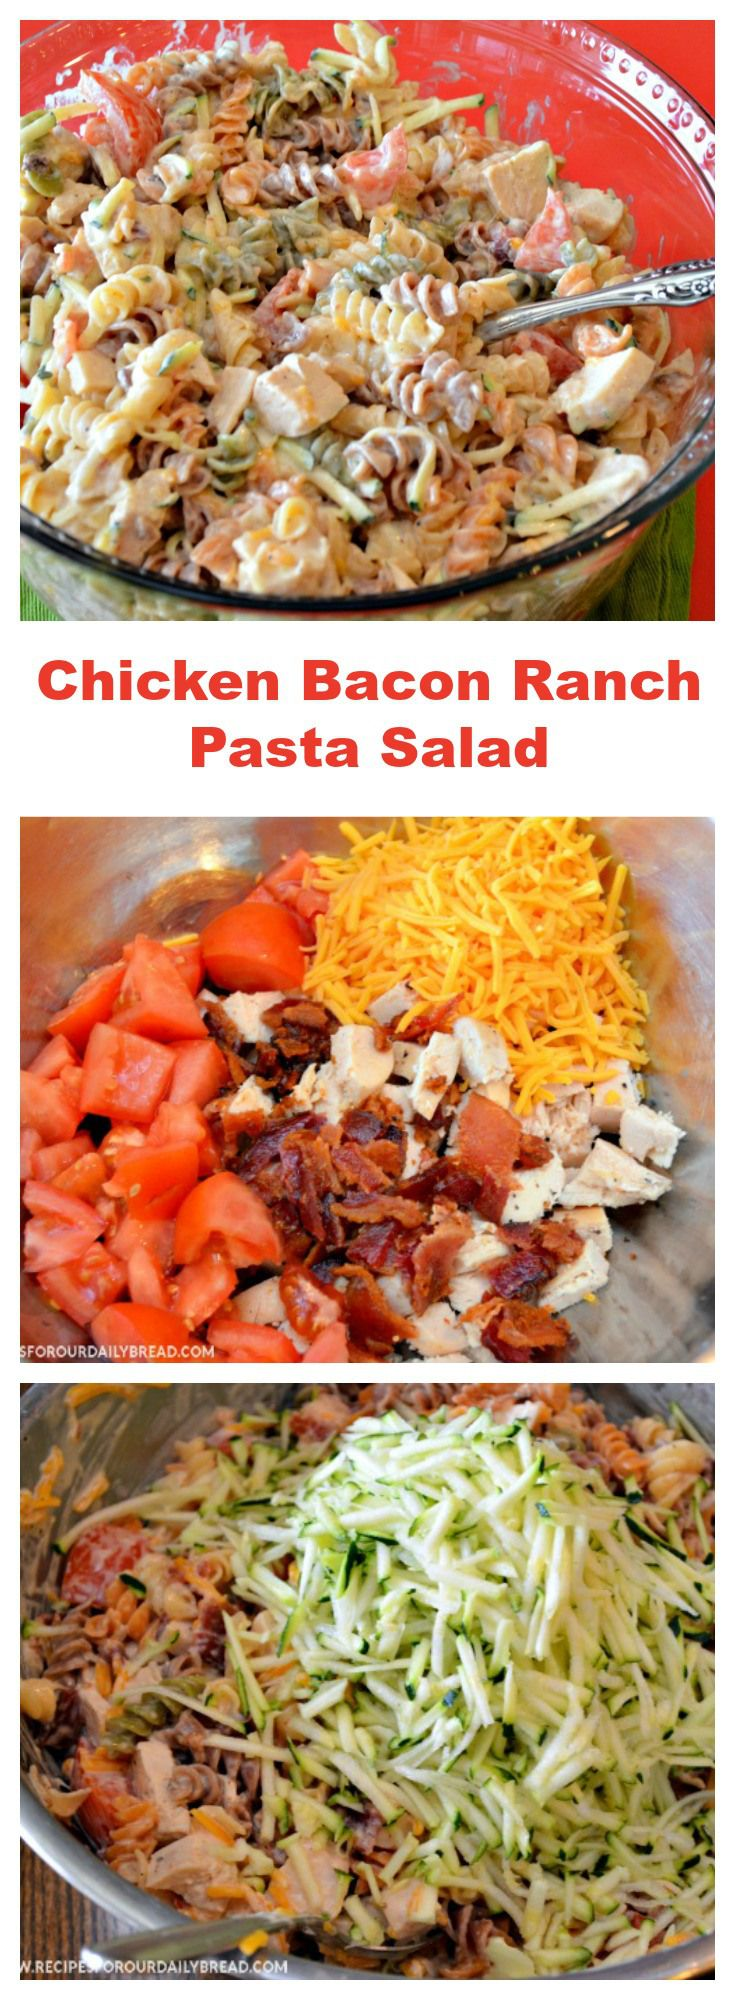 Chicken Bacon Ranch Pasta Salad   Recipes For Our Daily Bread